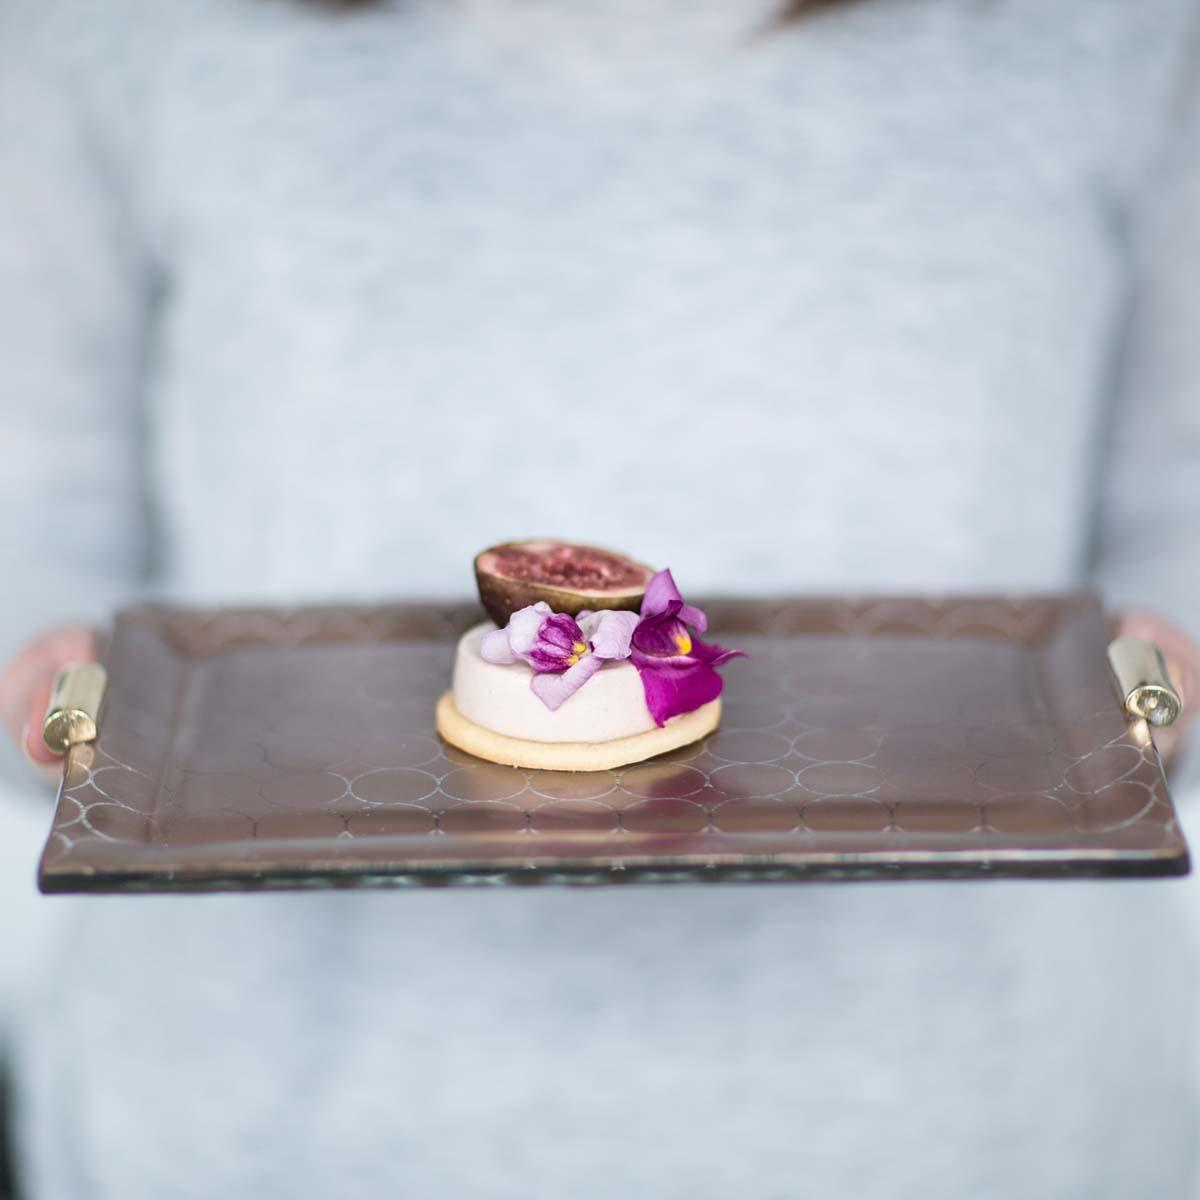 Woman in grey shirt holding a handcrafted brown charger plate by a tableware designer with brass handles and a small dessert on top